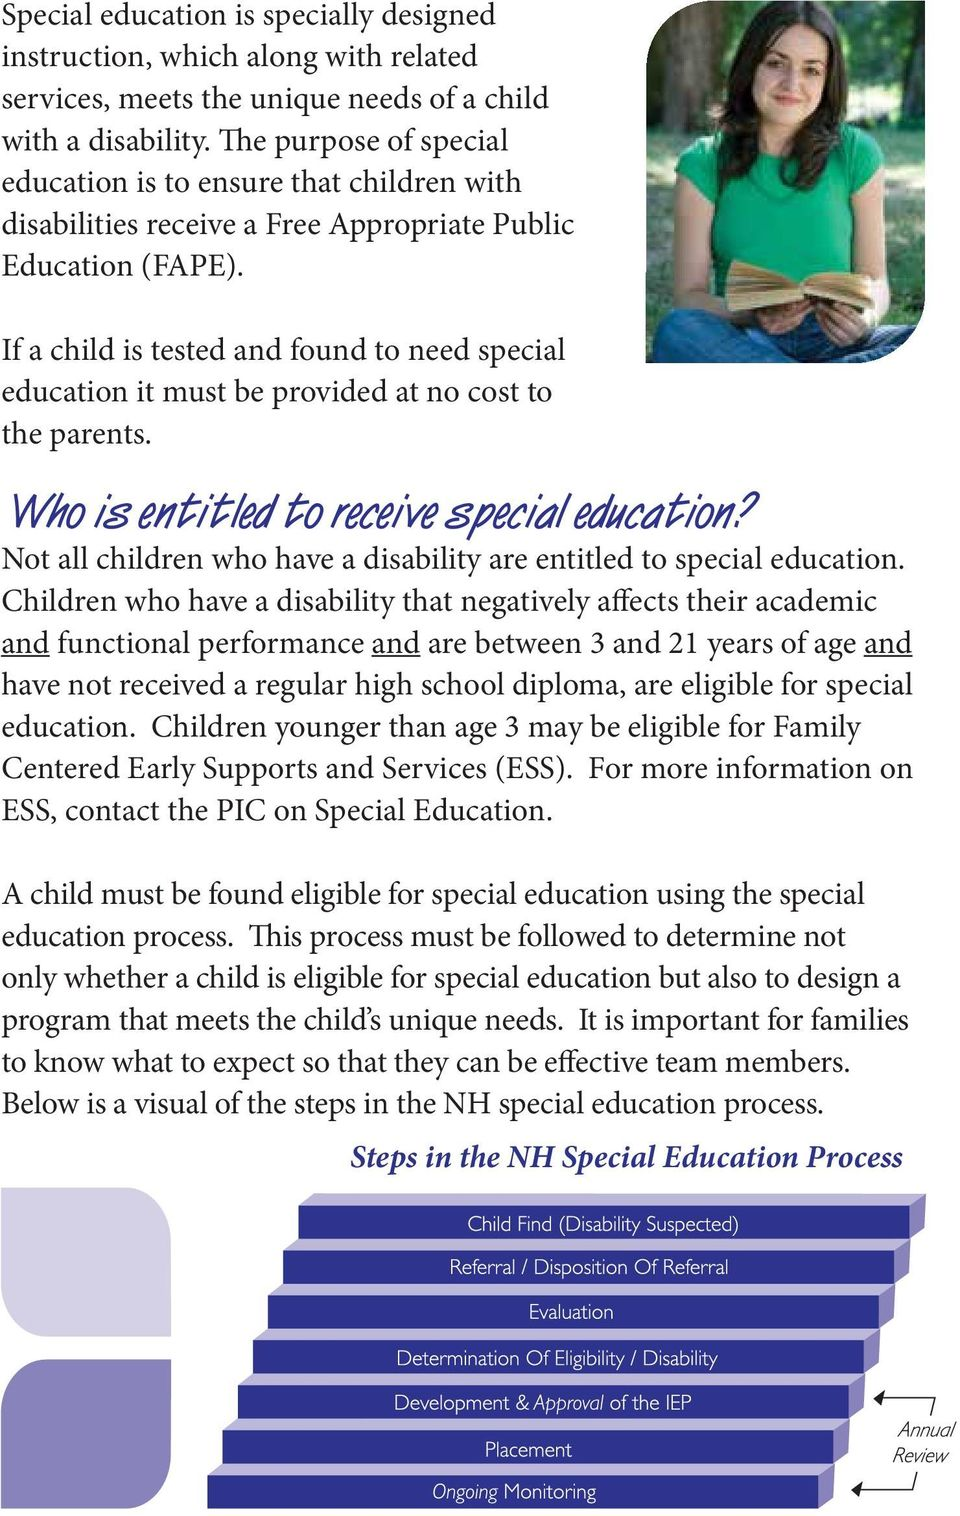 If a child is tested and found to need special education it must be provided at no cost to the parents. Who is entitled to receive special education?